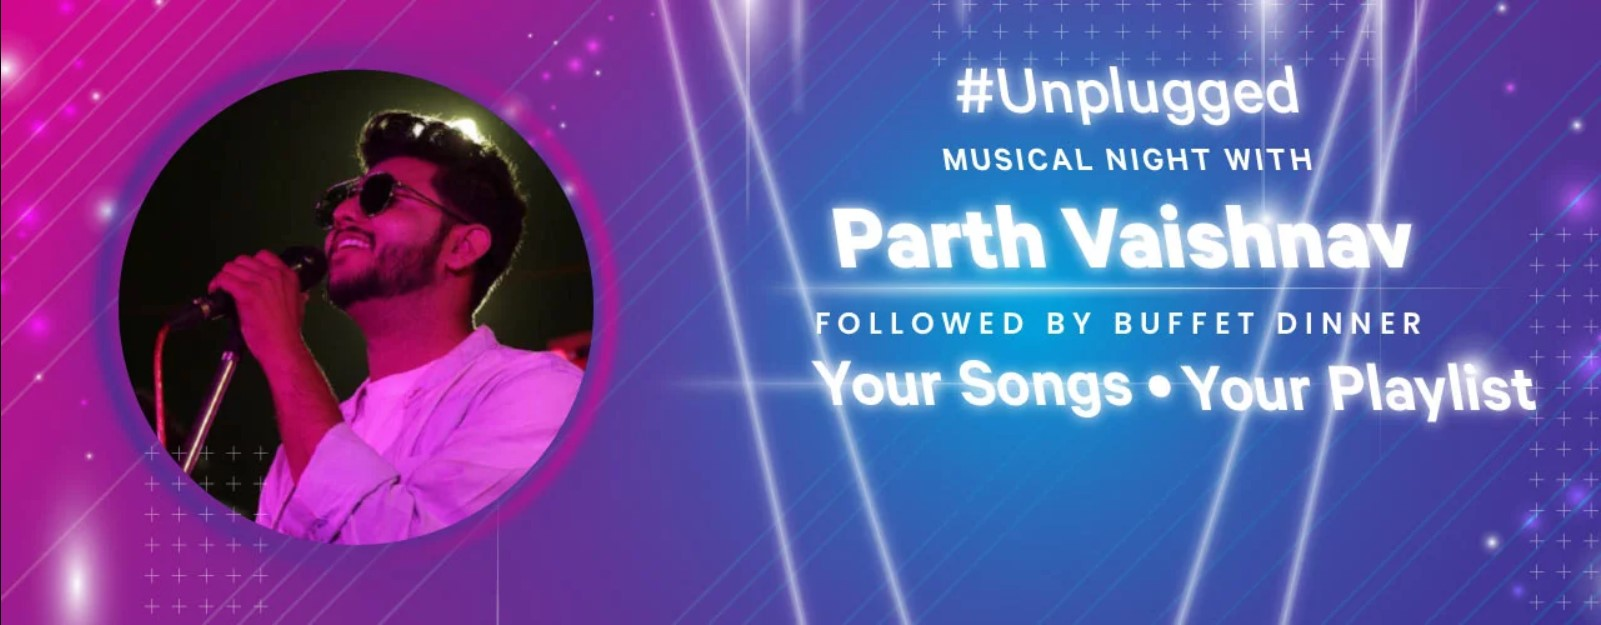 https://creativeyatra.com/wp-content/uploads/2019/09/Musical-Night-with-Parth-Vaishnav.jpg